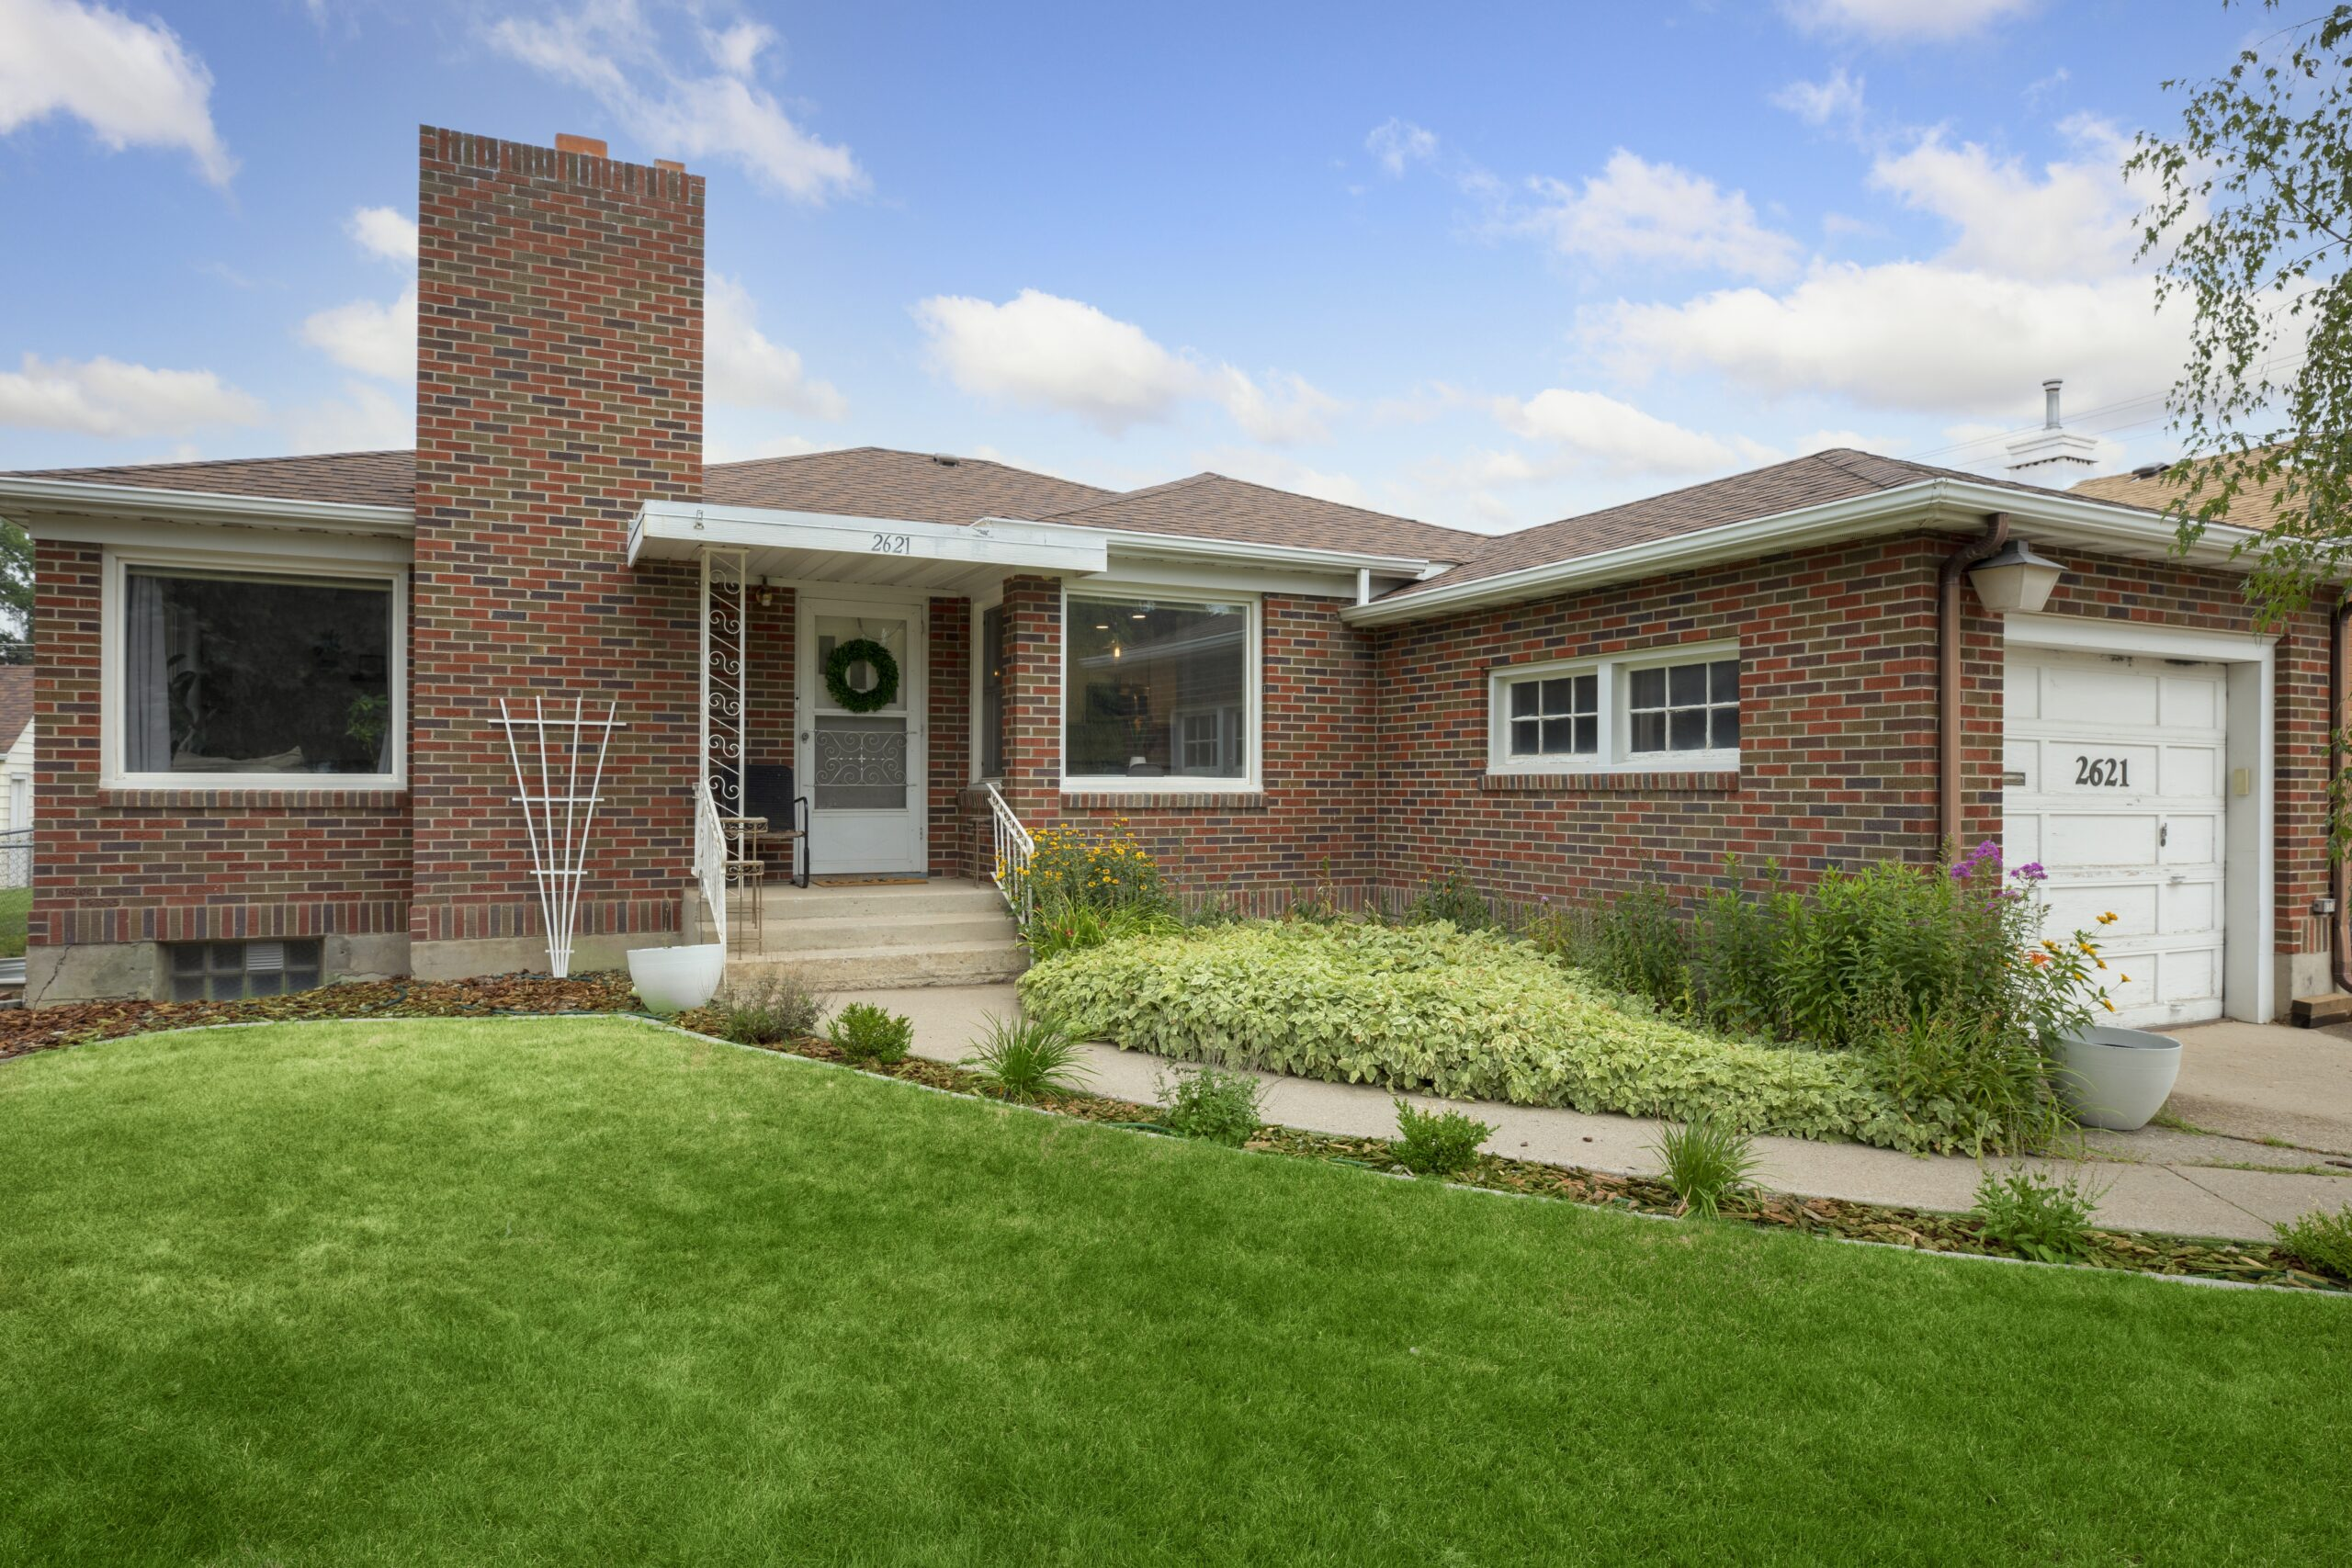 2621-3rd-avenue-south-great-falls-mt-usa-019